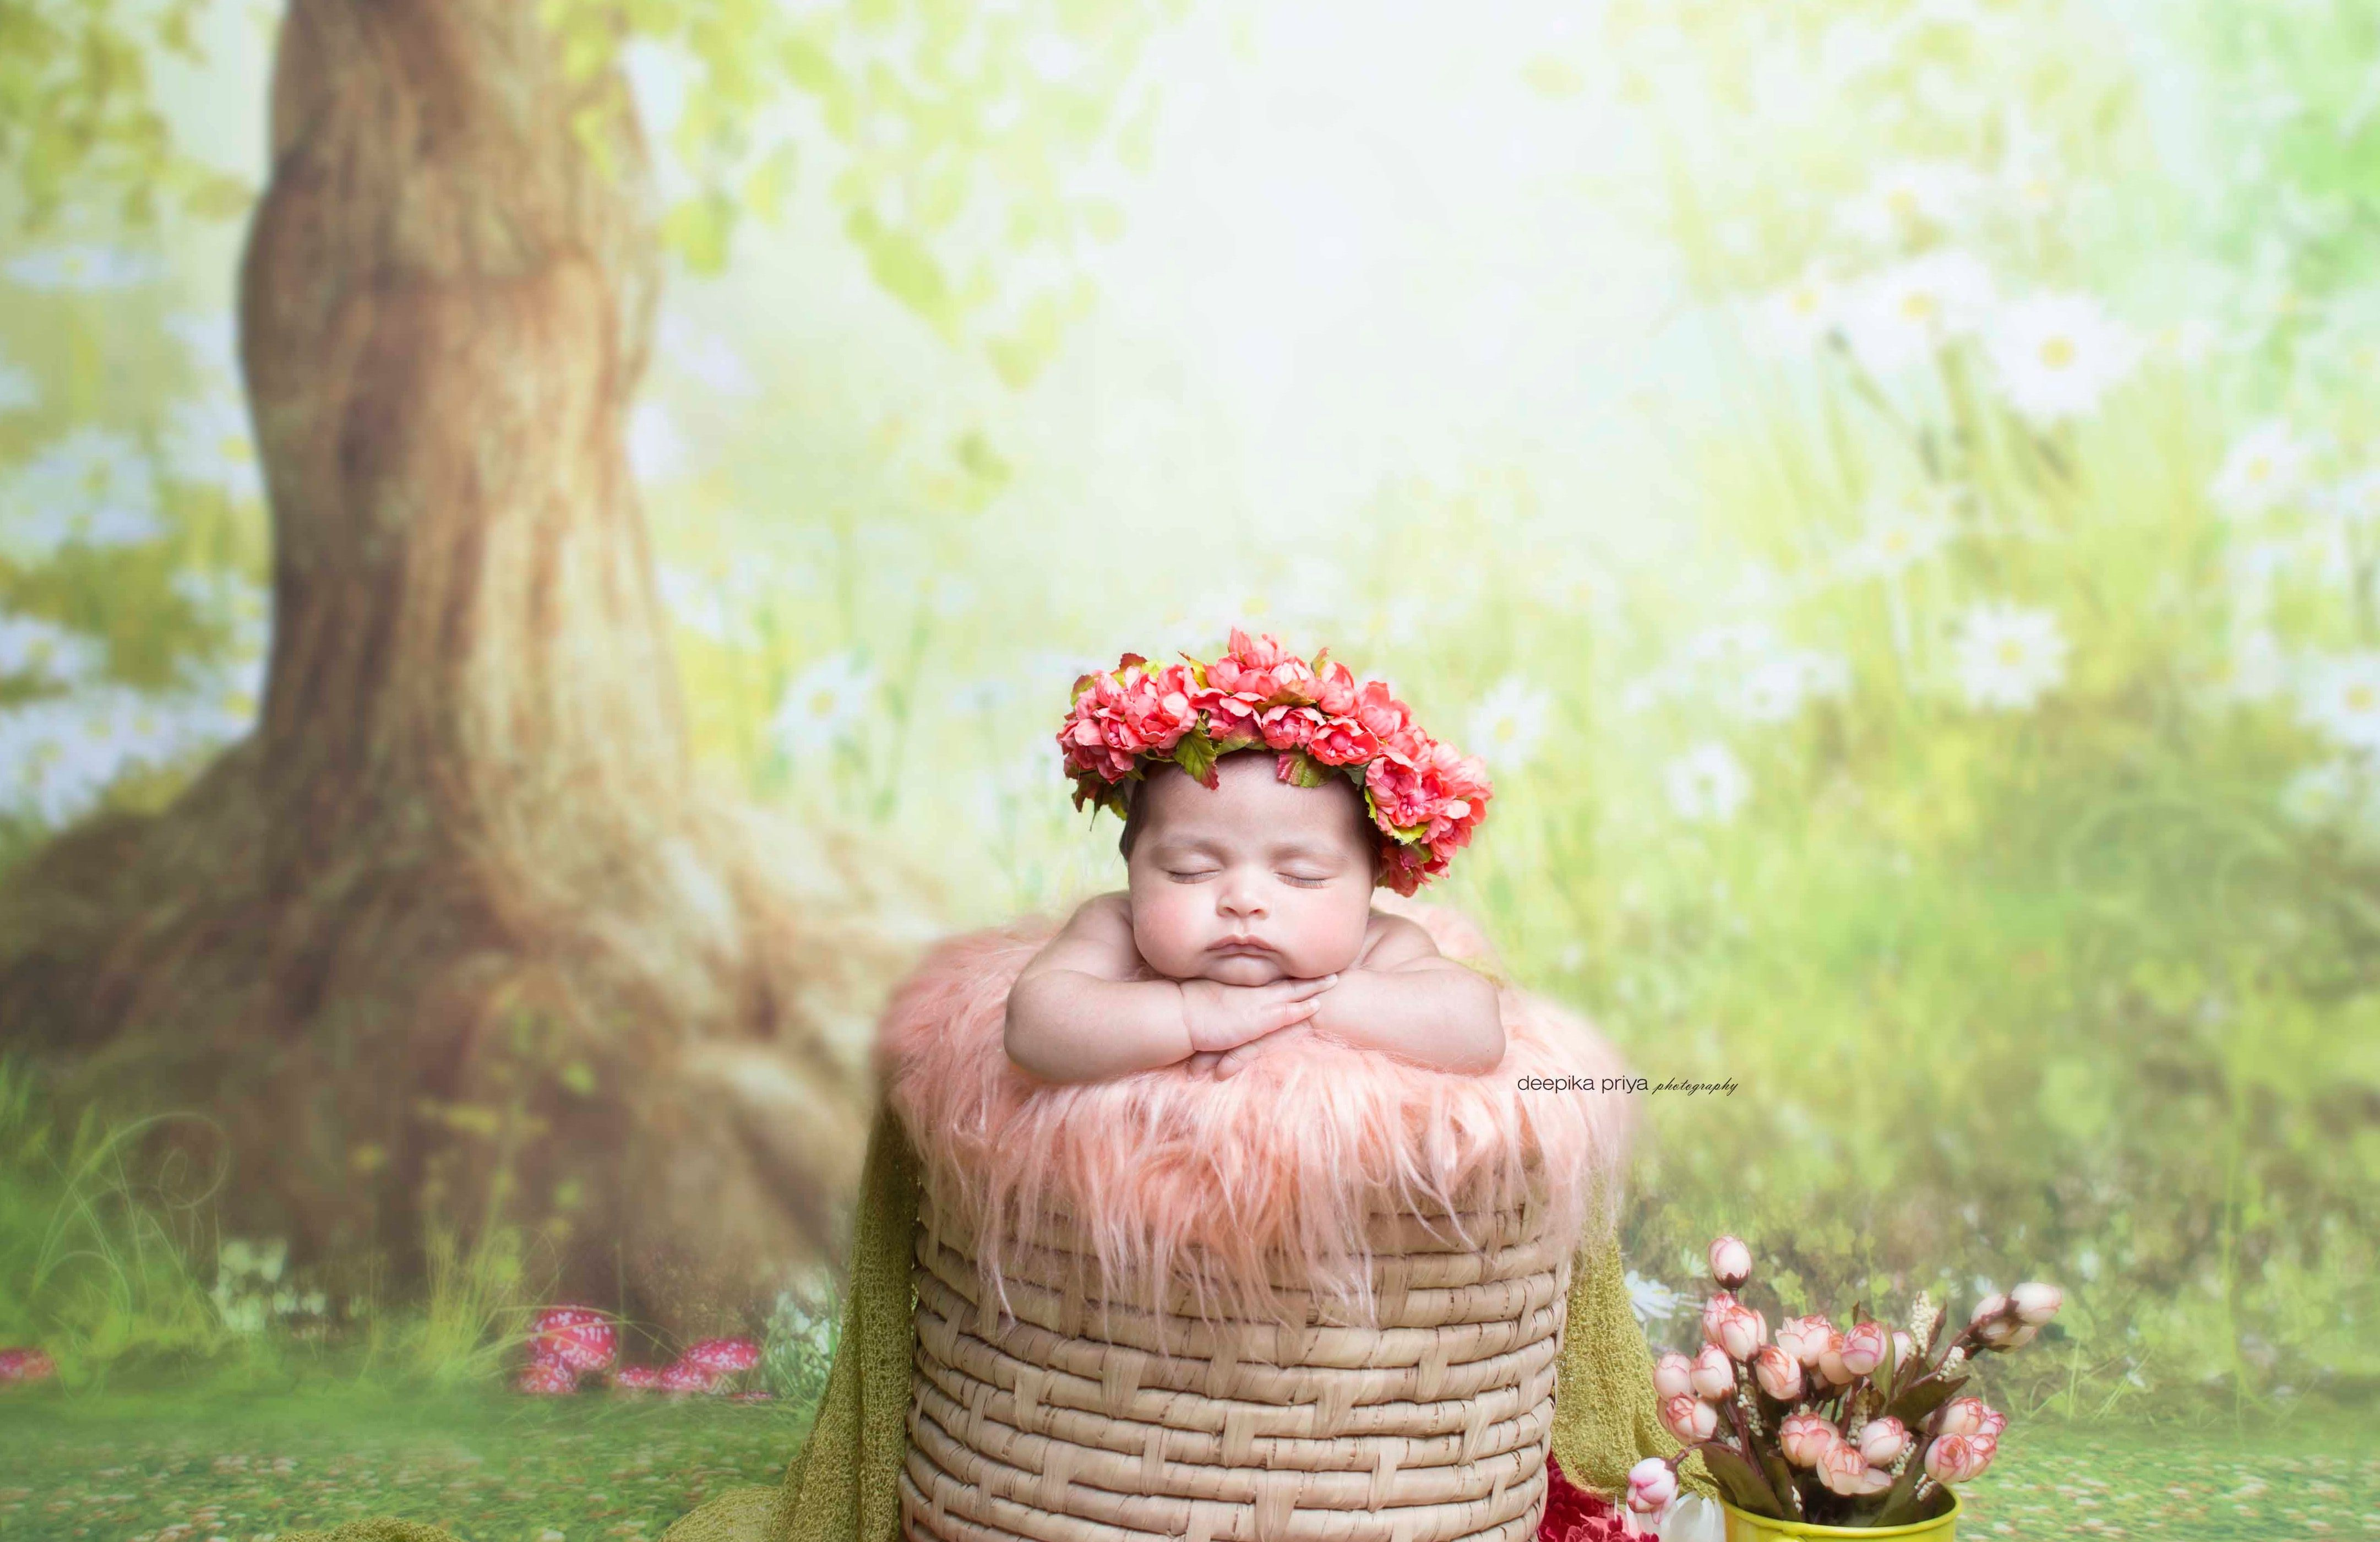 Safari themed baby photoshoot newborn photography